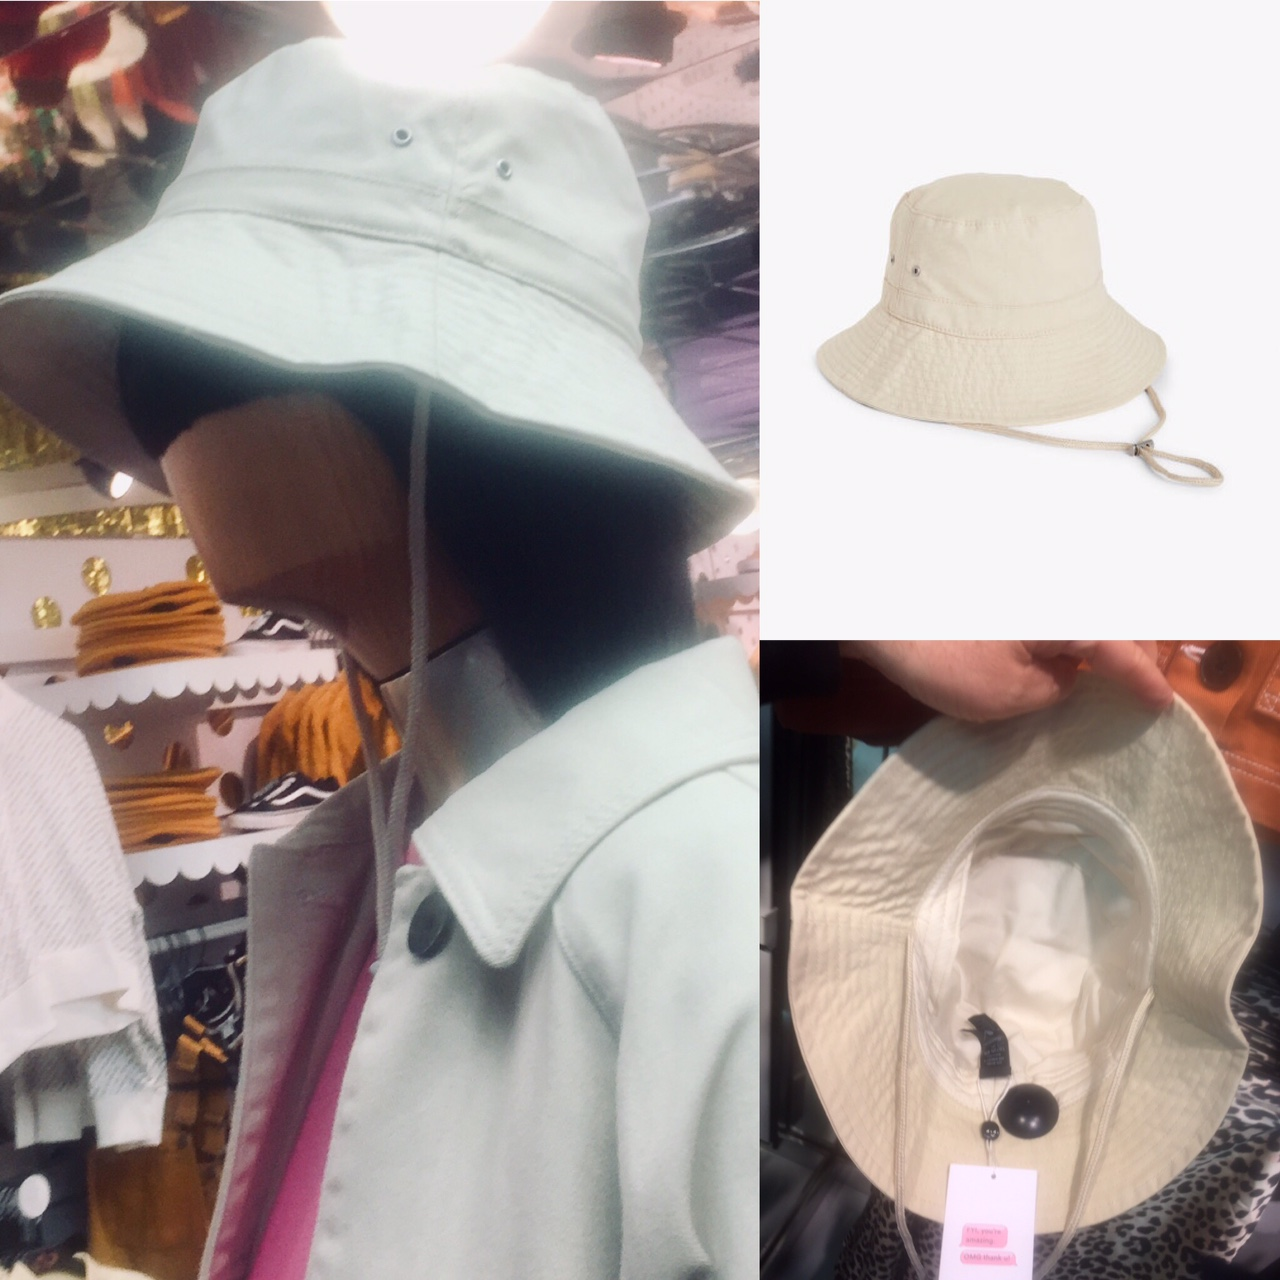 8879c551 MONKI and ARKET stores are showing both classic buckets hats in plaid,  denim to corduroy and also larger buckets (boonies) with chin cords in  canvas.